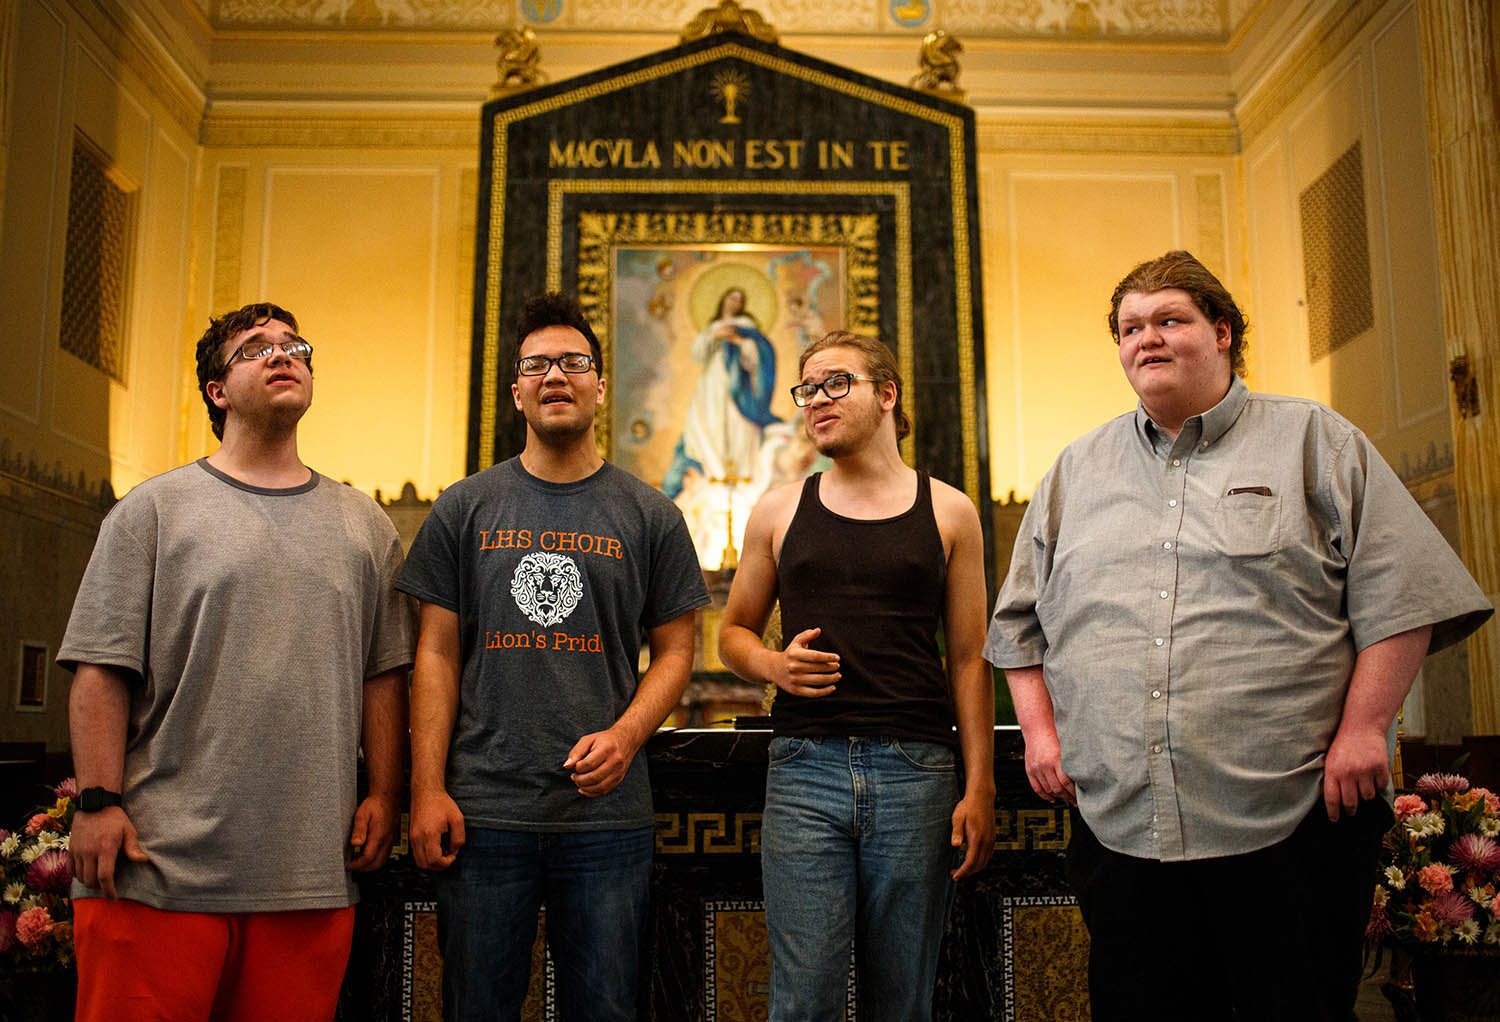 Bryce Cody, left, Stephen Hollenback, Harrison Paries and Baylon Elfgen, right, of the barbershop quartet, The Sound Four, rehearse at the Cathedral of Immaculate Conception, Tuesday, June 4, 2019, in Springfield, Ill. The group will be part of the First Friday Concert Series at the Cathedral of the Immaculate Conception on Friday. [Justin L. Fowler/The State Journal-Register]